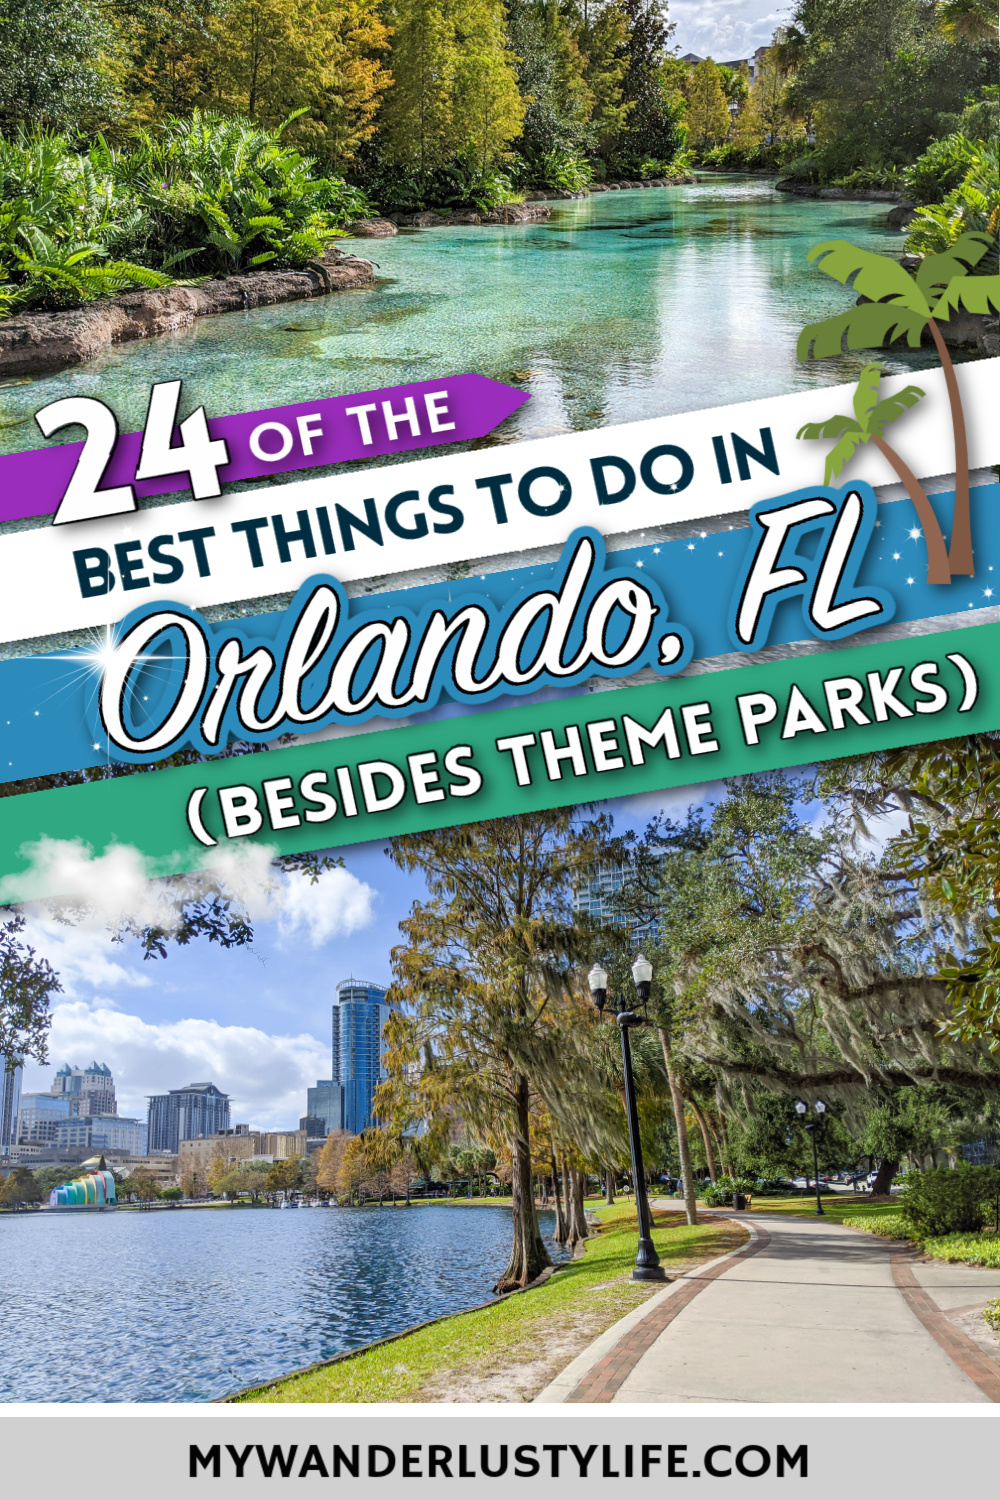 The Best Things to Do in Orlando, Florida besides theme parks   Craft beer, water sports, adventure activities, museums, history, art, culture, shopping, dining, and so much more.